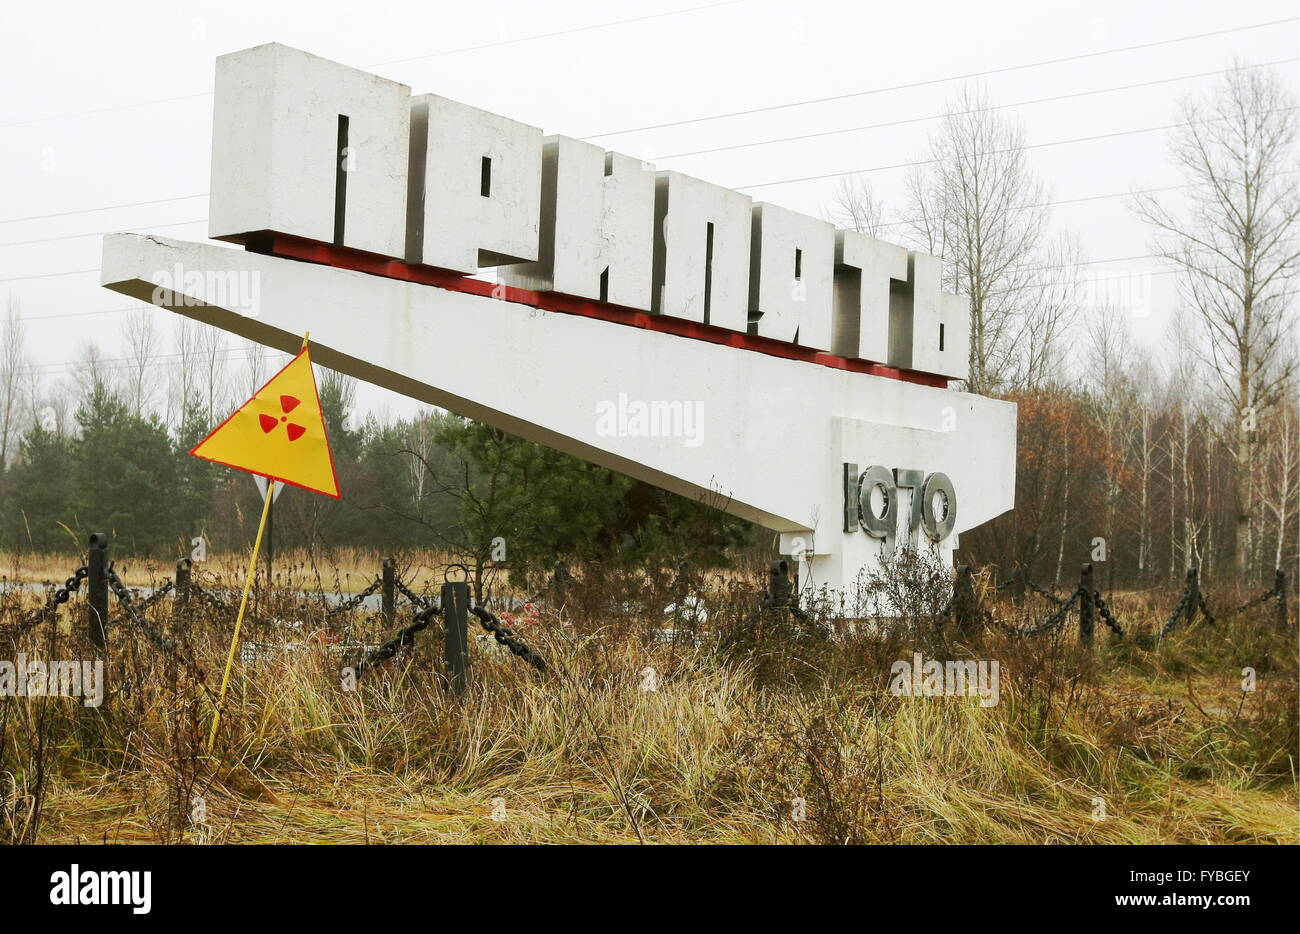 PRIPYAT, UKRAINE. Pictured in this file image is a stele at an entrance to the city of Pripyat near the Chernobyl - Stock Image